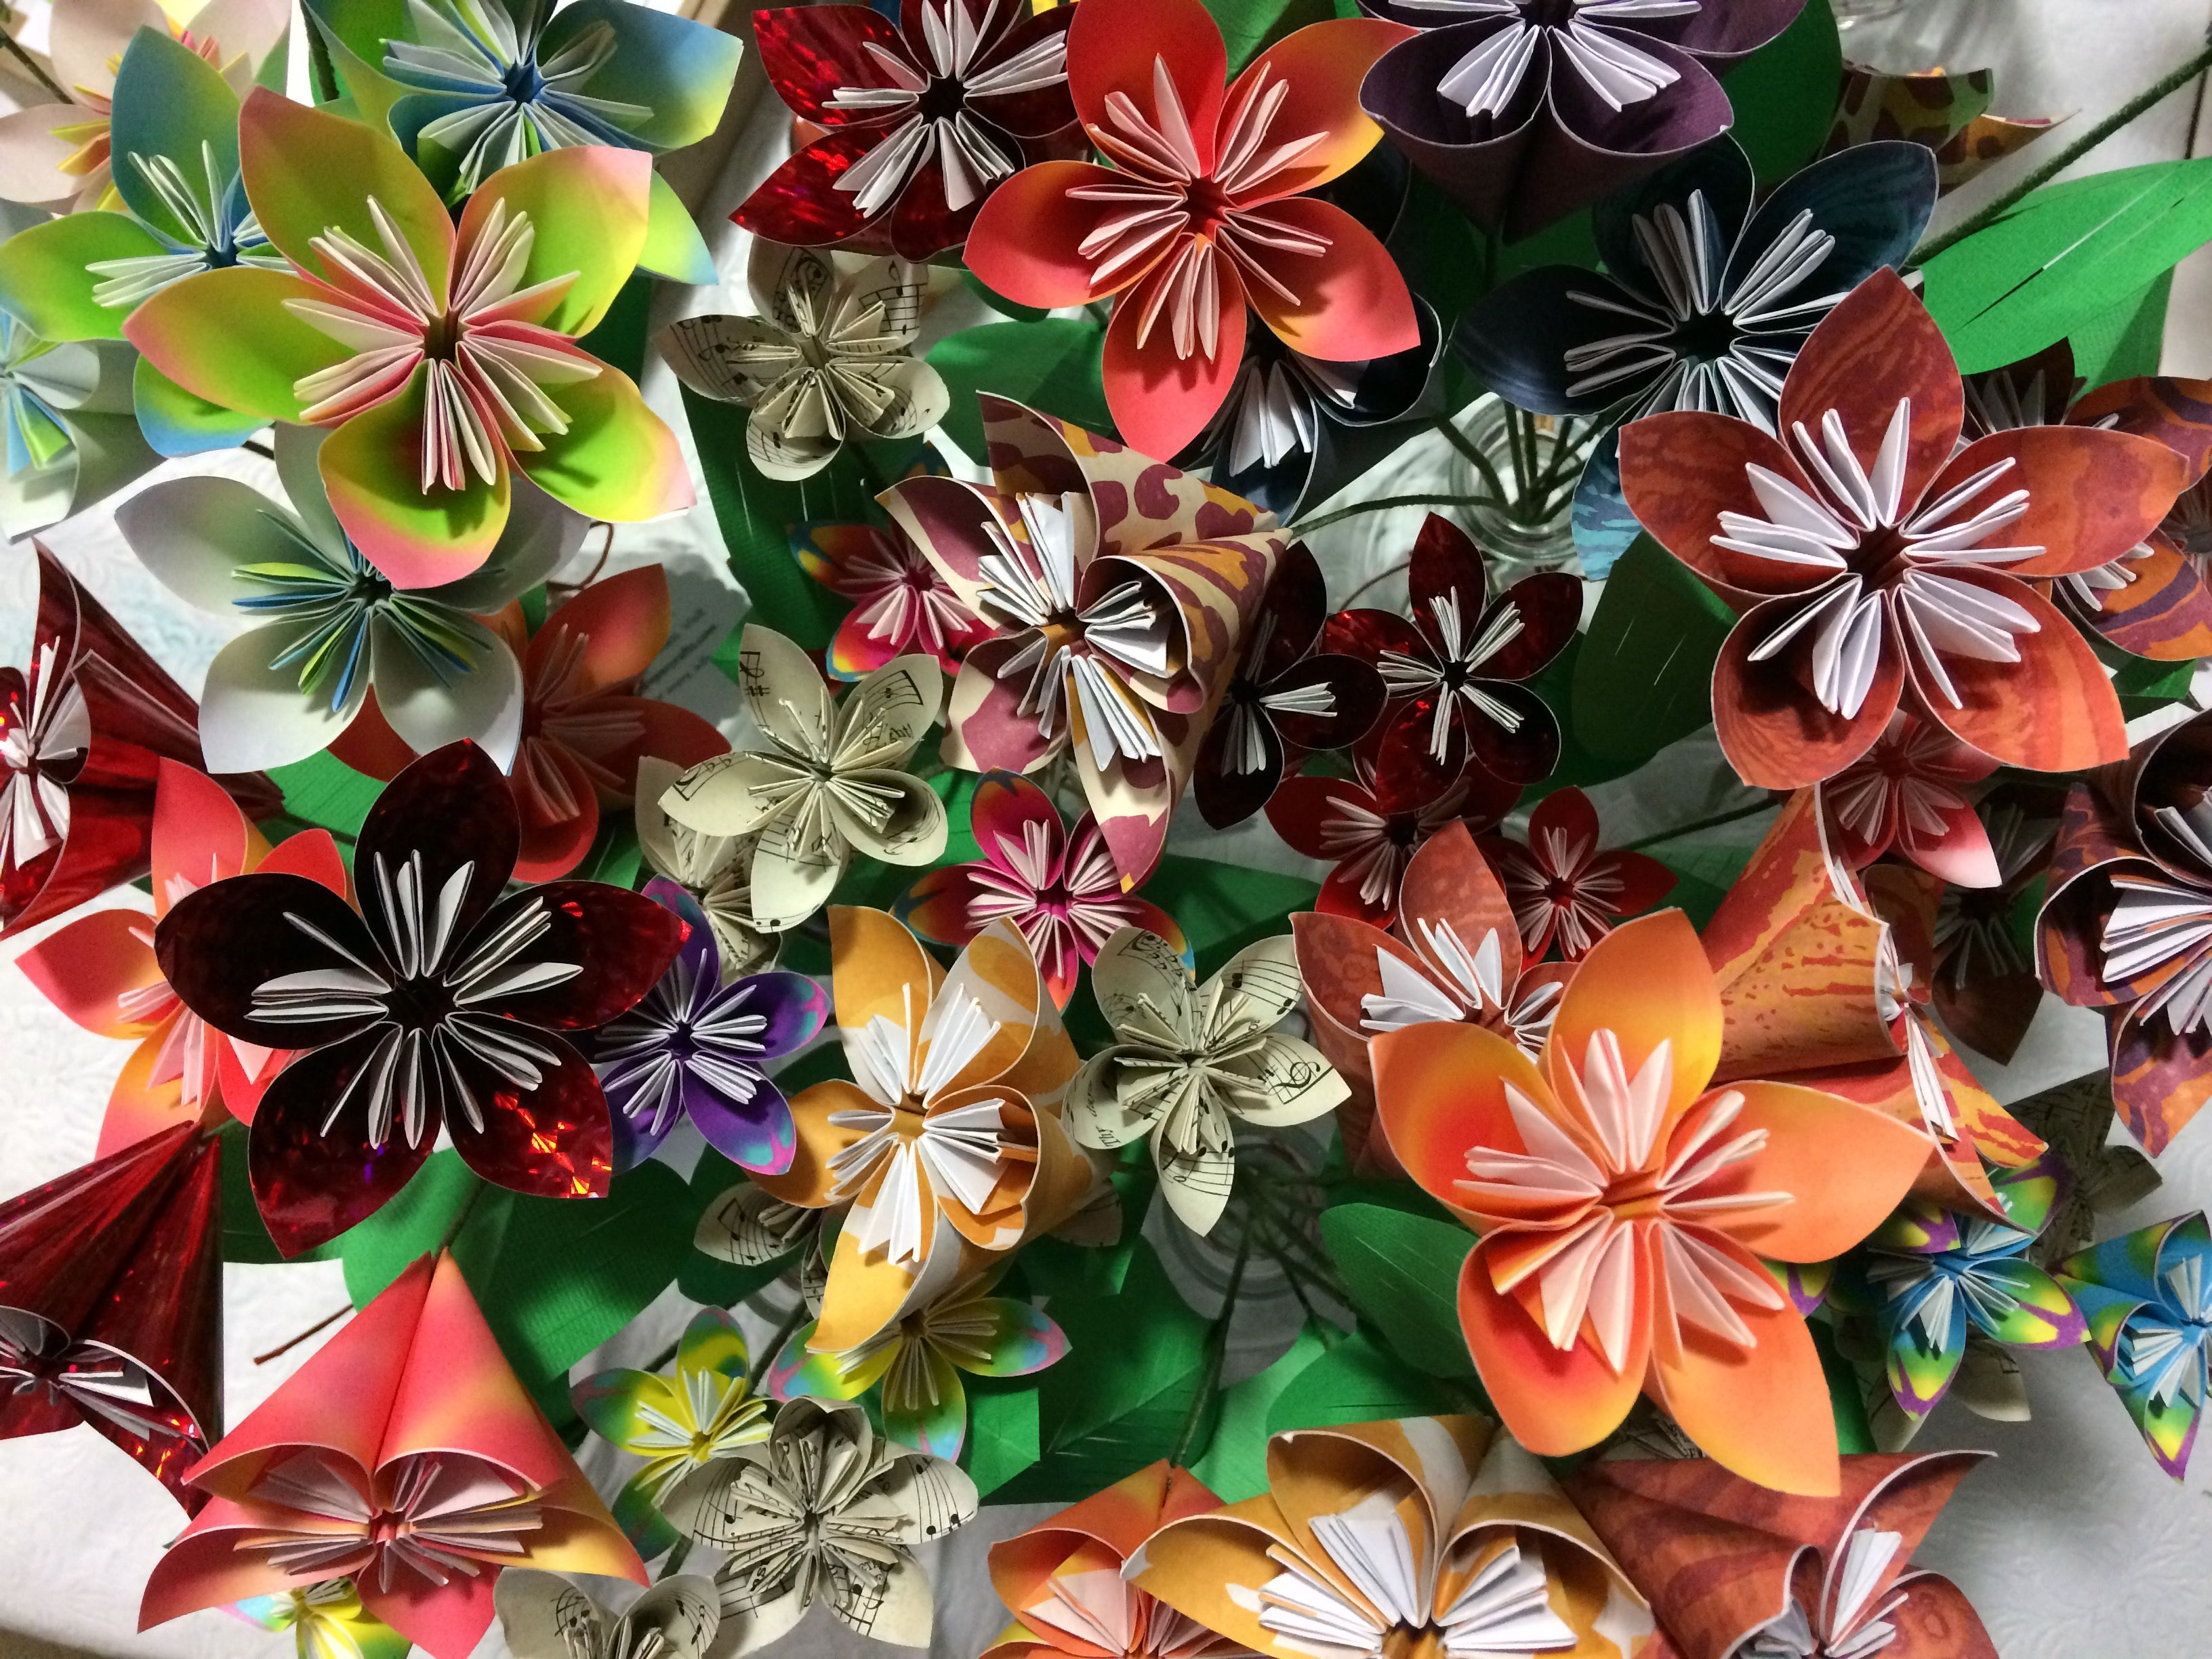 Origami Flowers Events King County Library System